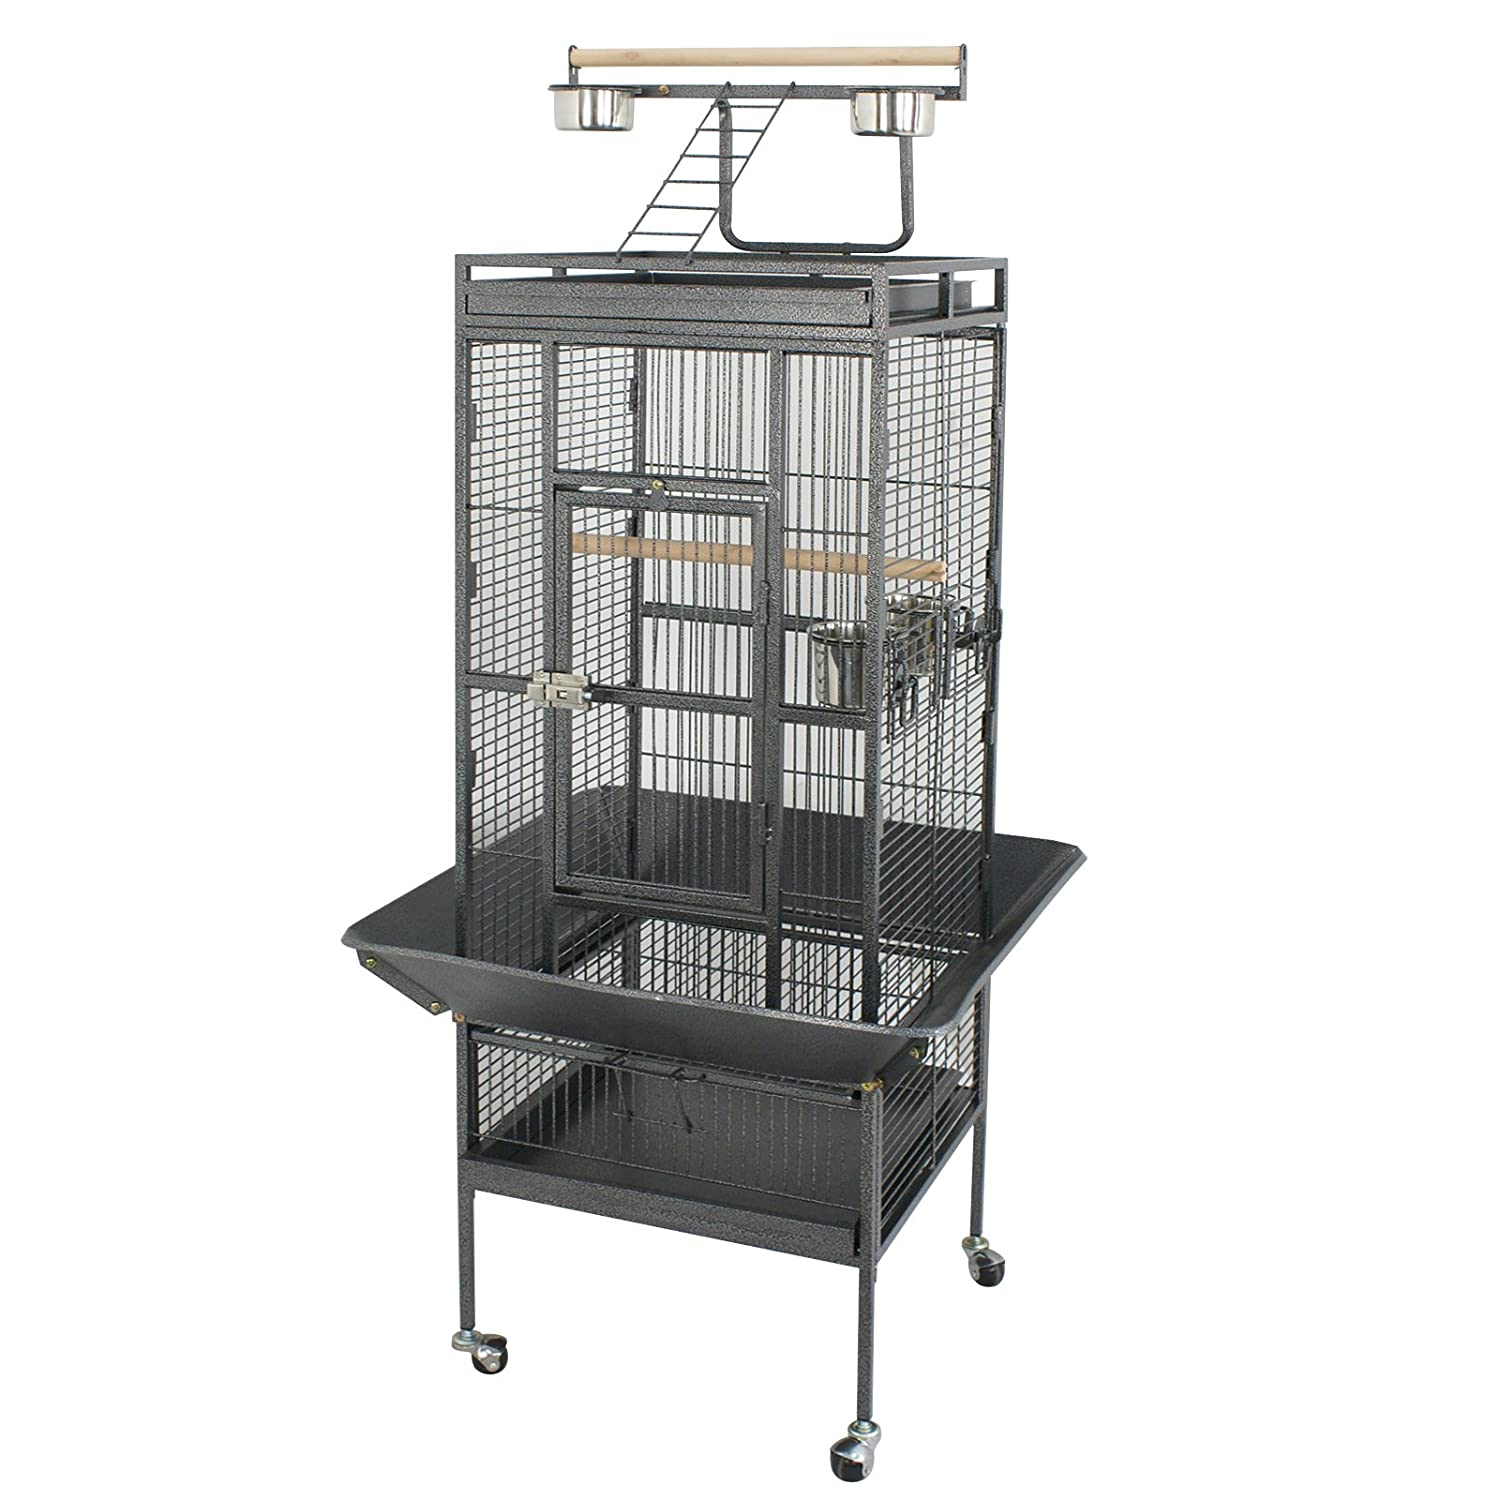 Black SUPER DEAL PRO 61// 68/'/' 2in1 Large Bird Cage with Rolling Stand Parrot Chinchilla Finch Cage Macaw Conure Cockatiel Cockatoo Pet House Wrought Iron Birdcage